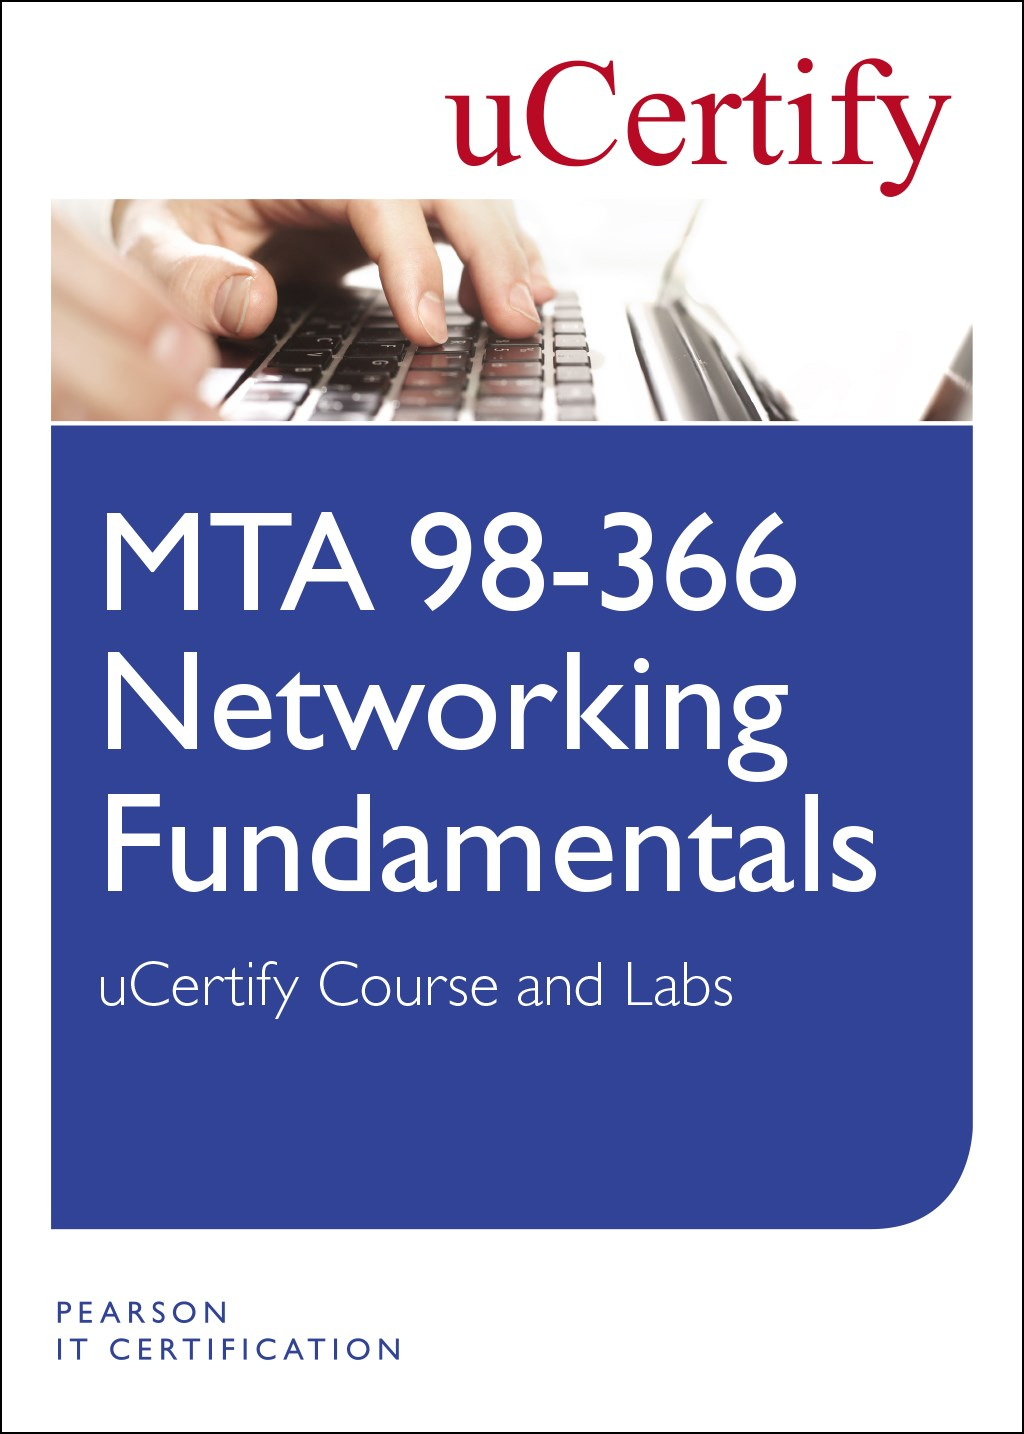 MTA 98-366: Networking Fundamentals uCertify Course and Labs